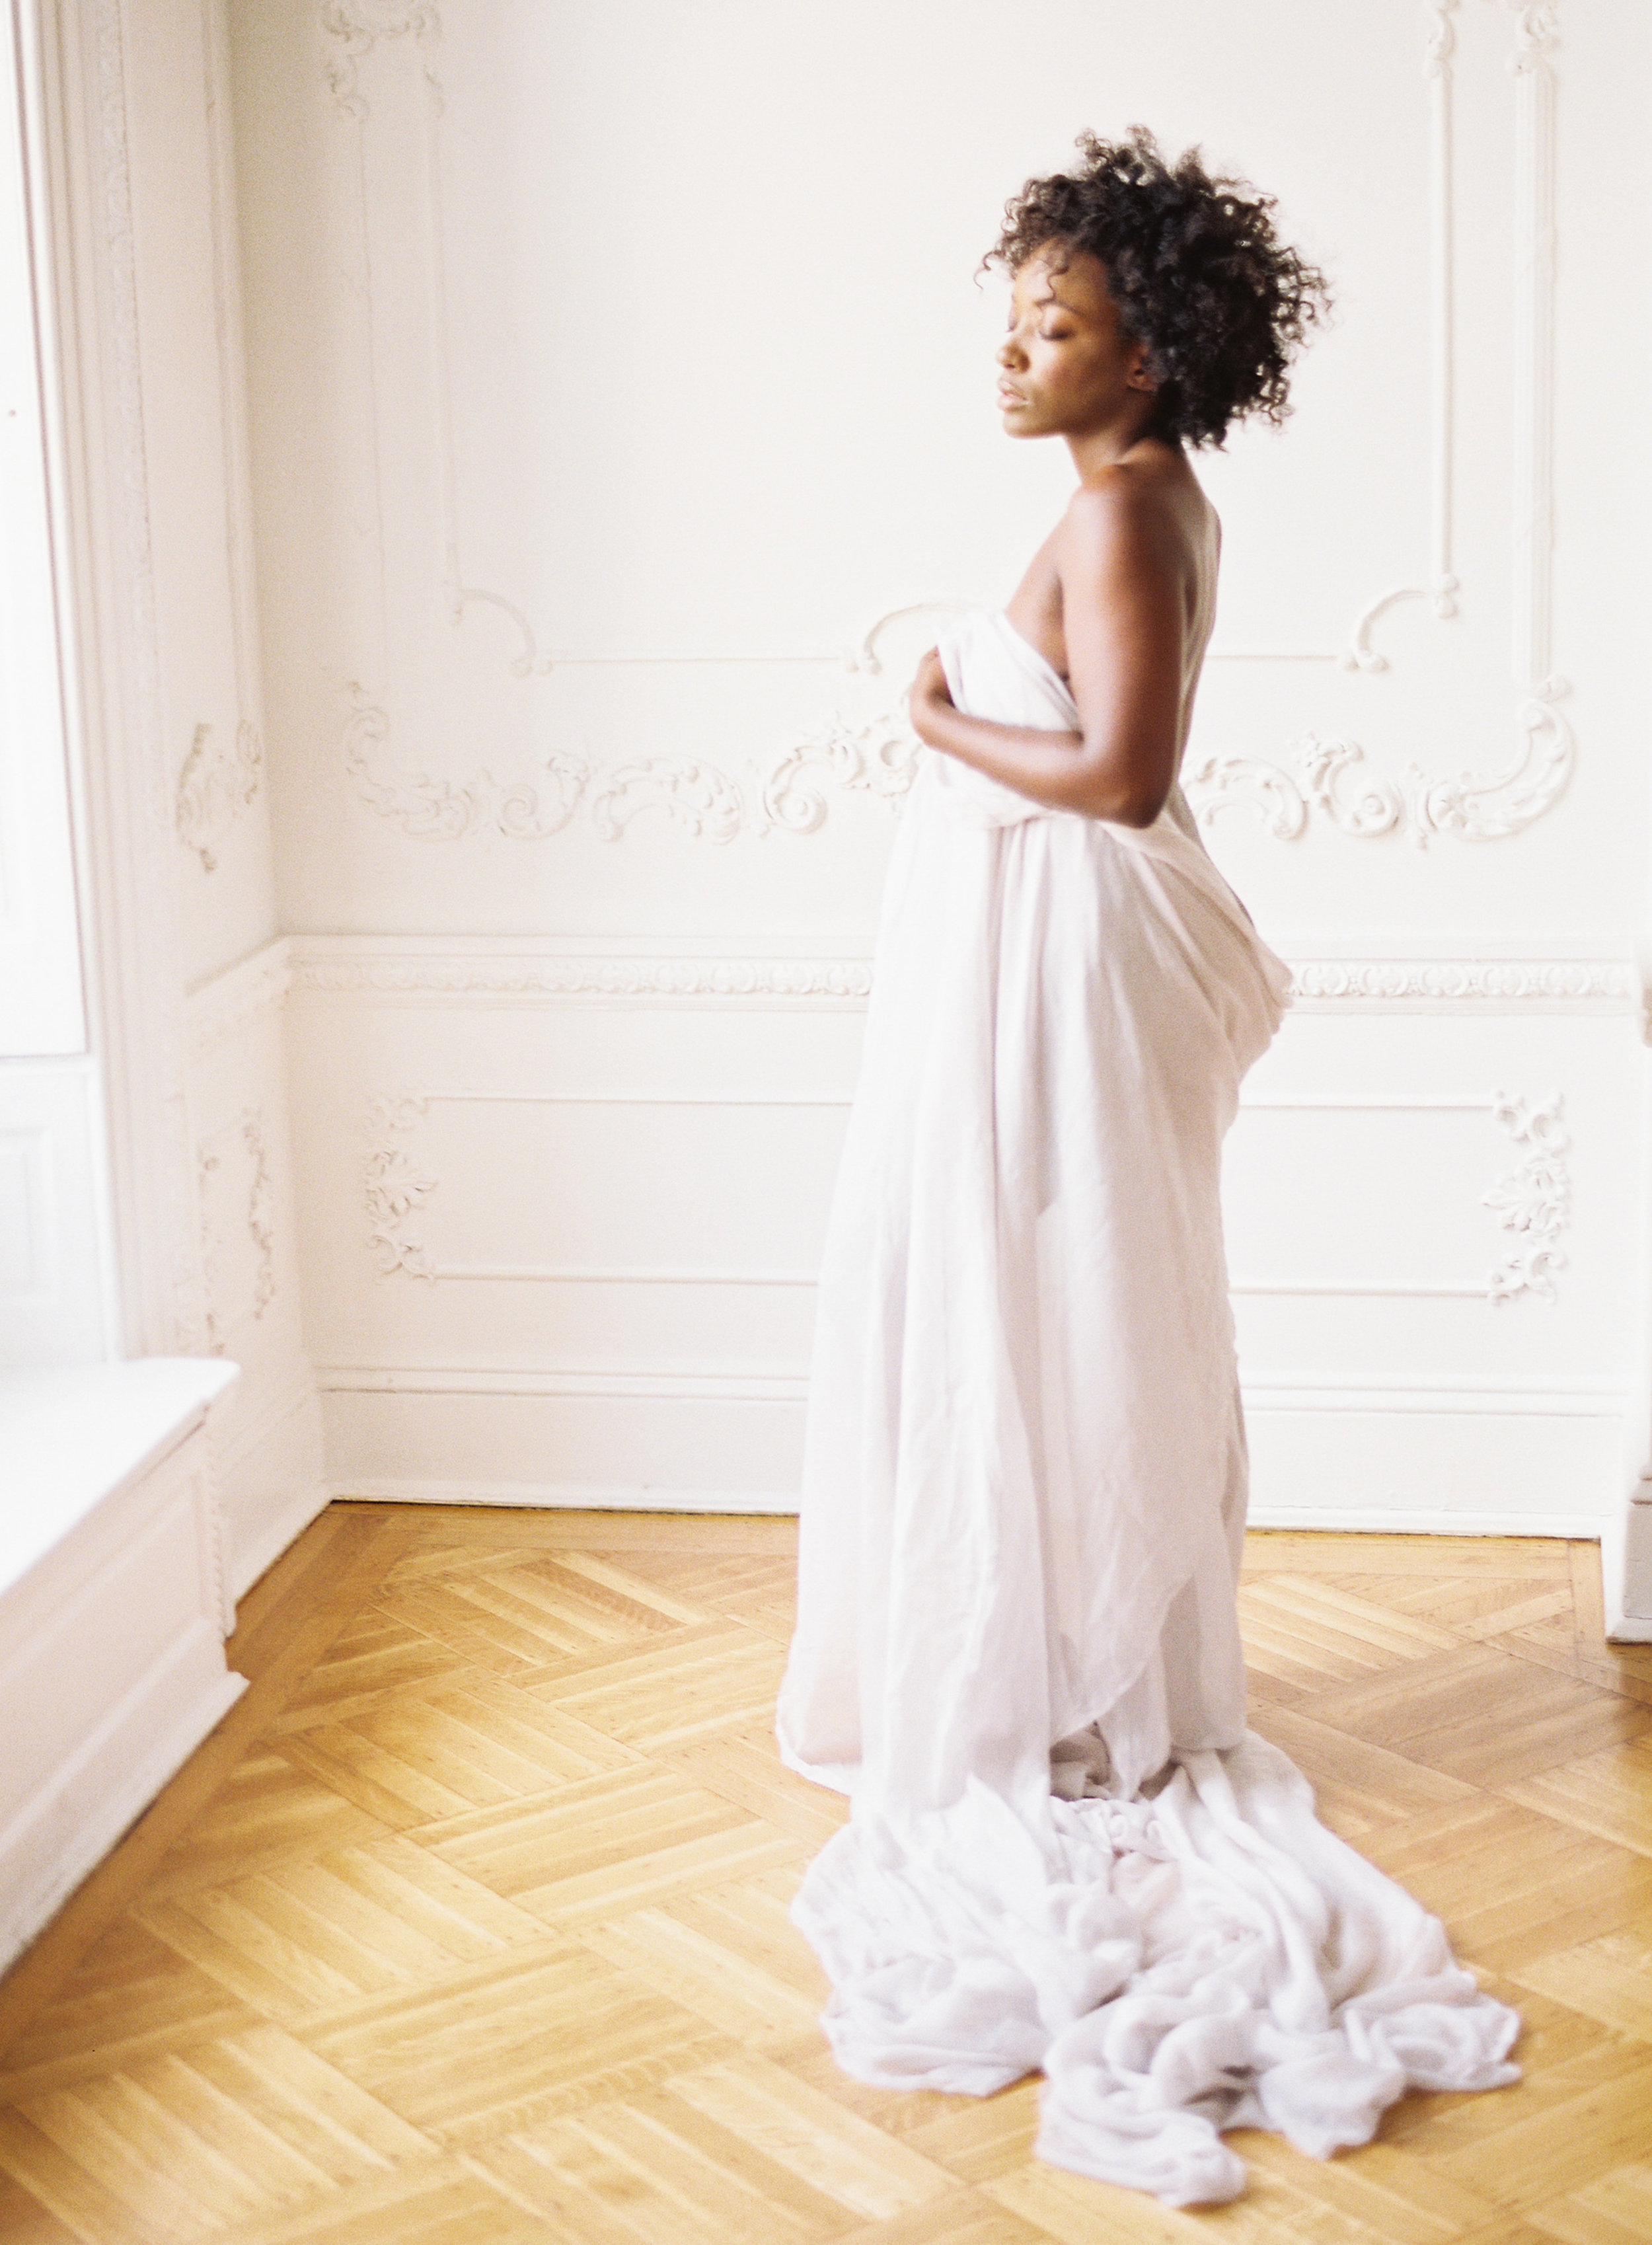 Minimal boudoir photoshoot at the Elephant Restaurant Baltimore with Michael and Carina Photography and fine art luxury wedding planner and stylist East Made Event Company-0008.jpg